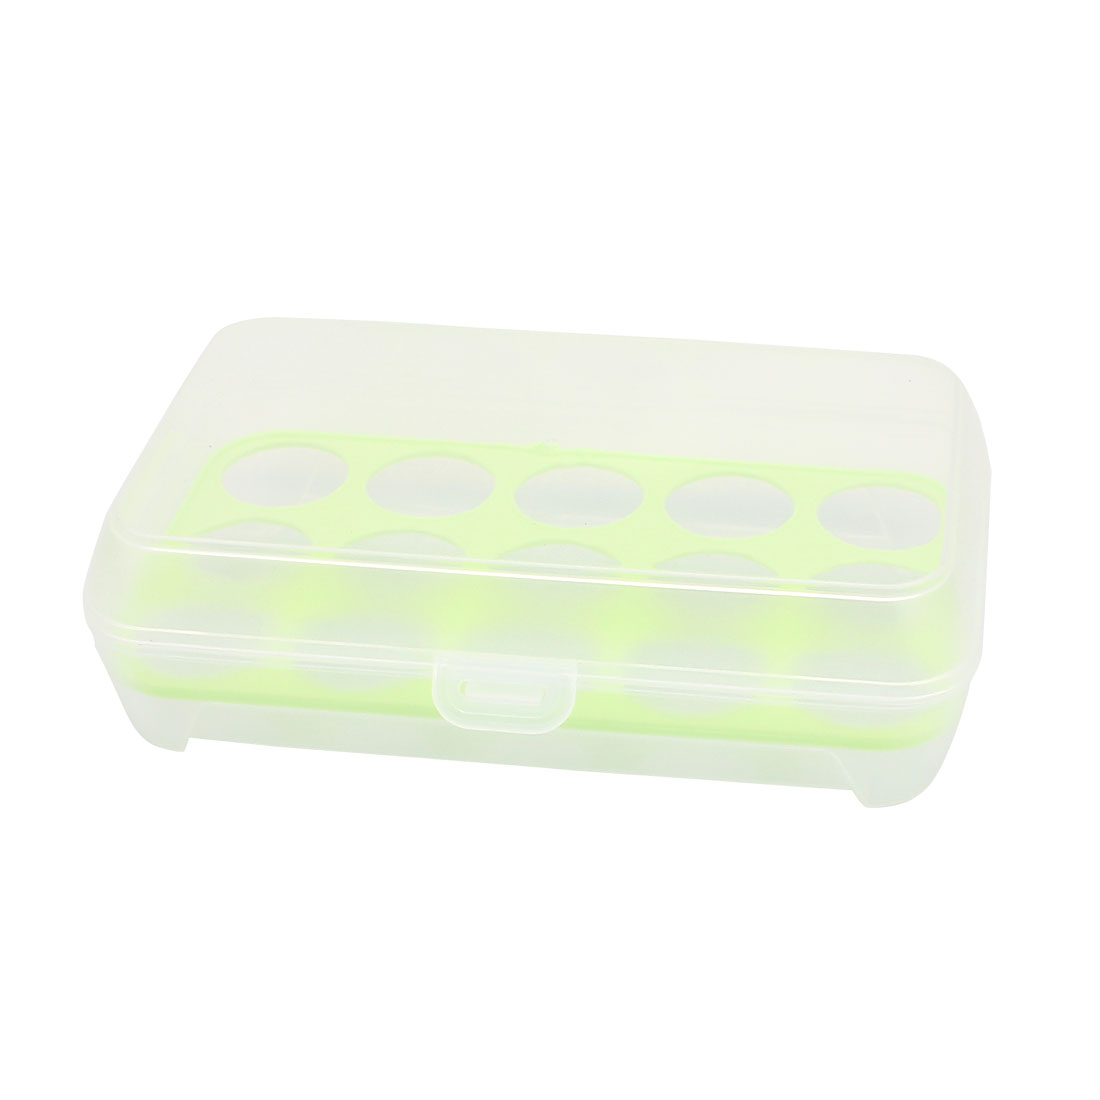 Outdoor Picnic Camping 15 Eggs Container Holder Box Case Storage Green